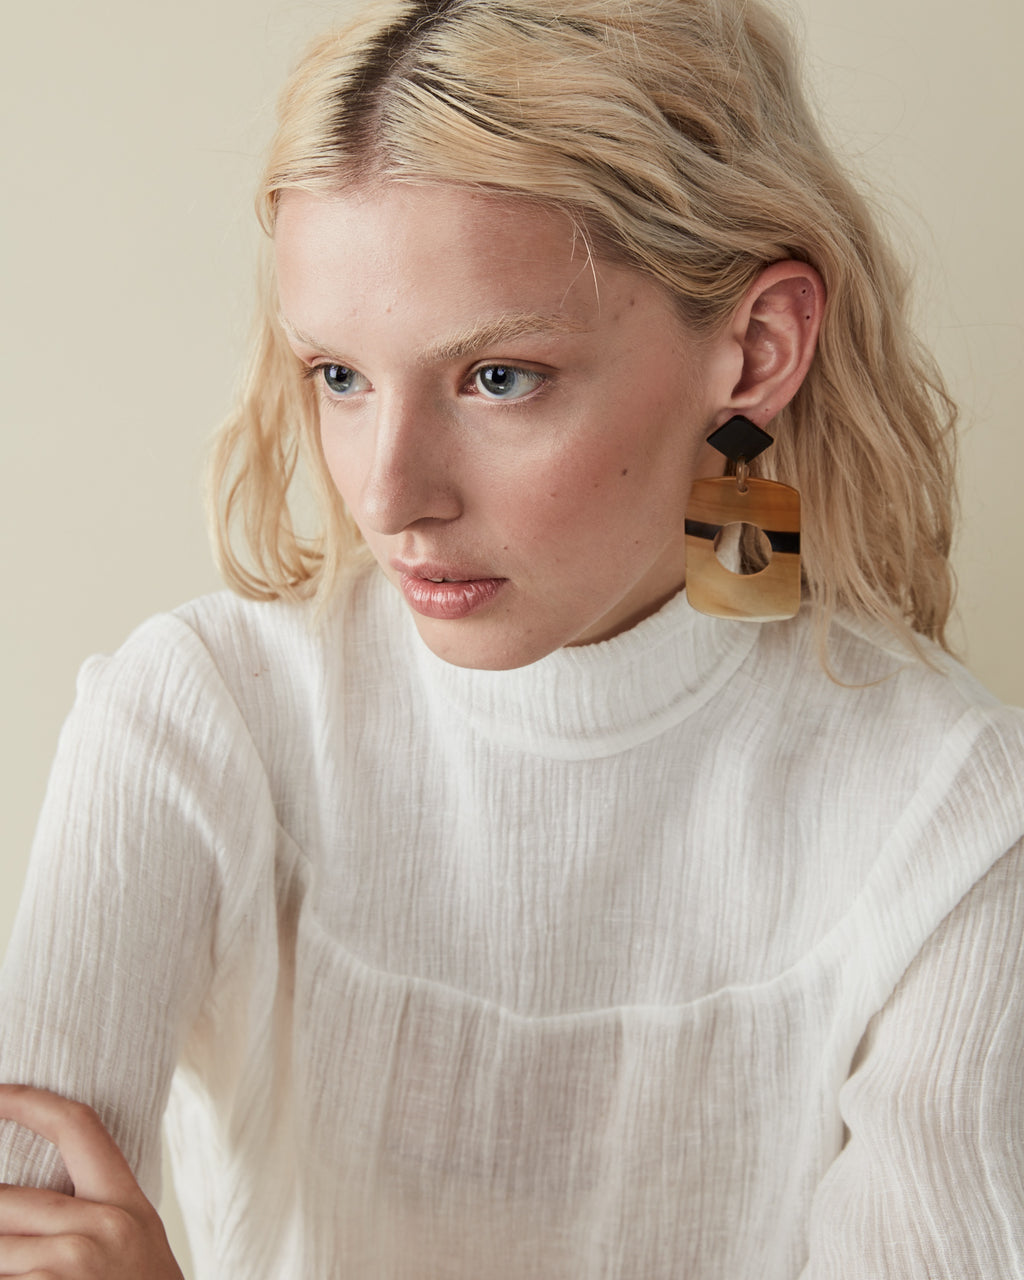 Natural Buffalo Horn Earring No 1 - Opelle bag FW18 - Opelle leather handbag handcrafted leather bag toronto Canada